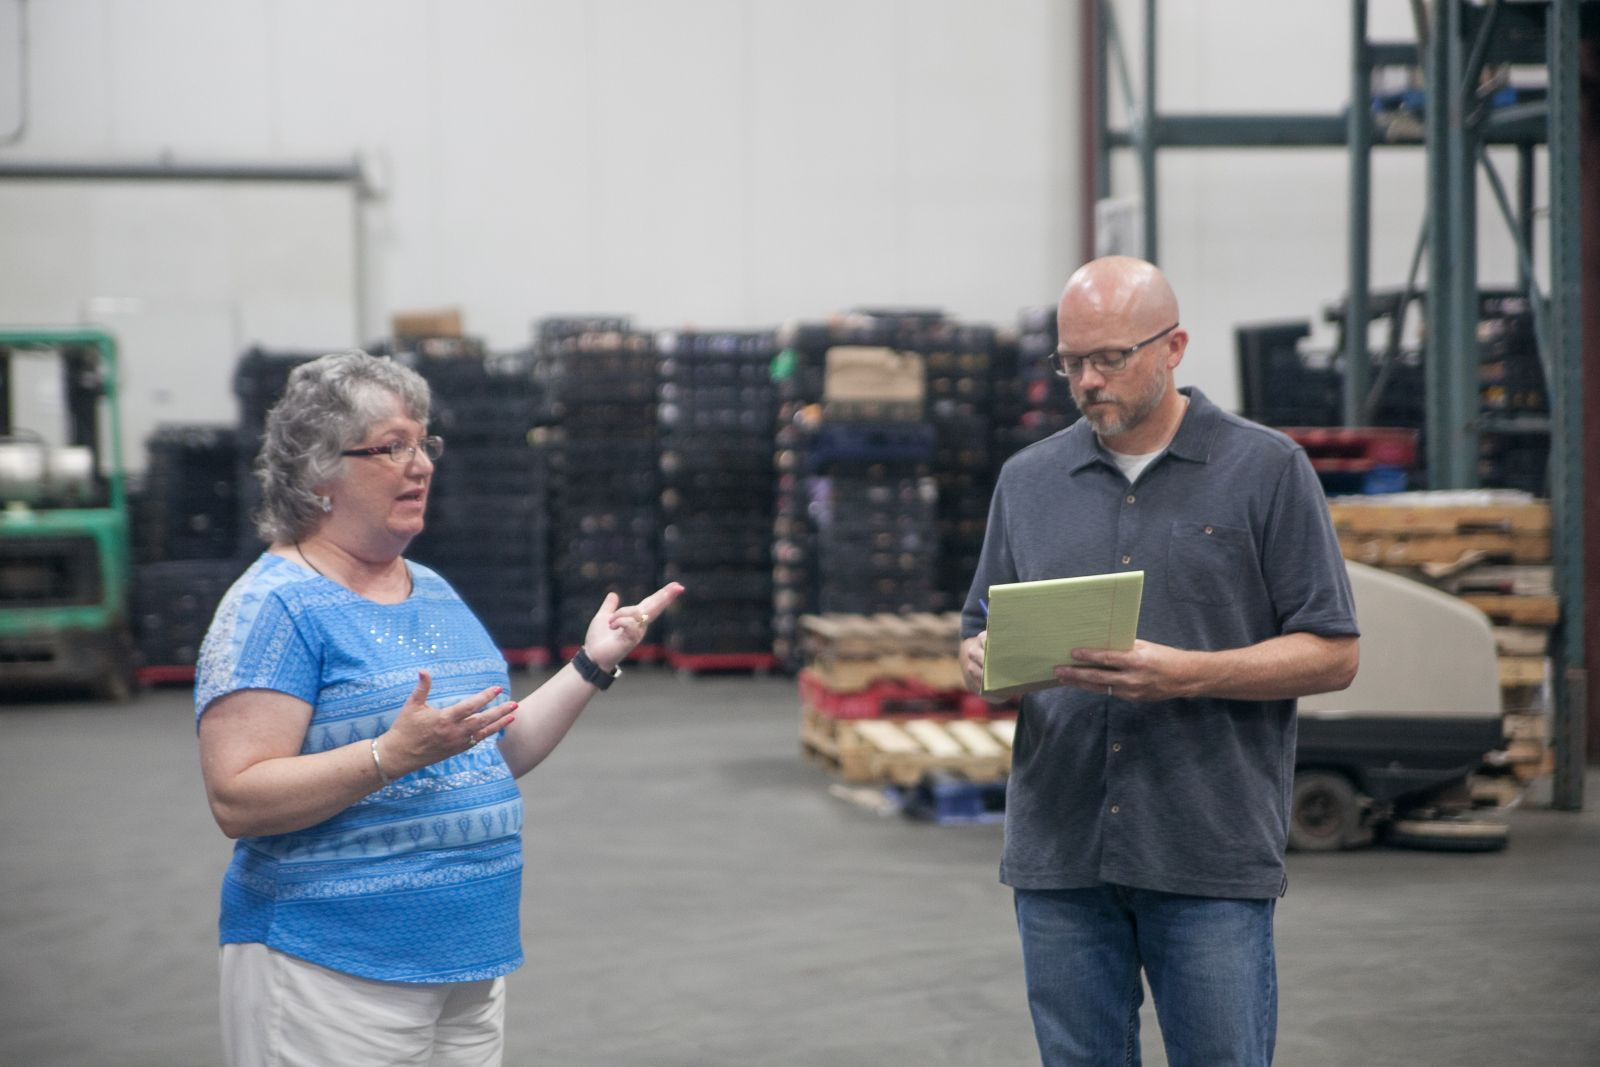 Harvest Hope CEO Denise Holland talks with Amazon's George Schultz.